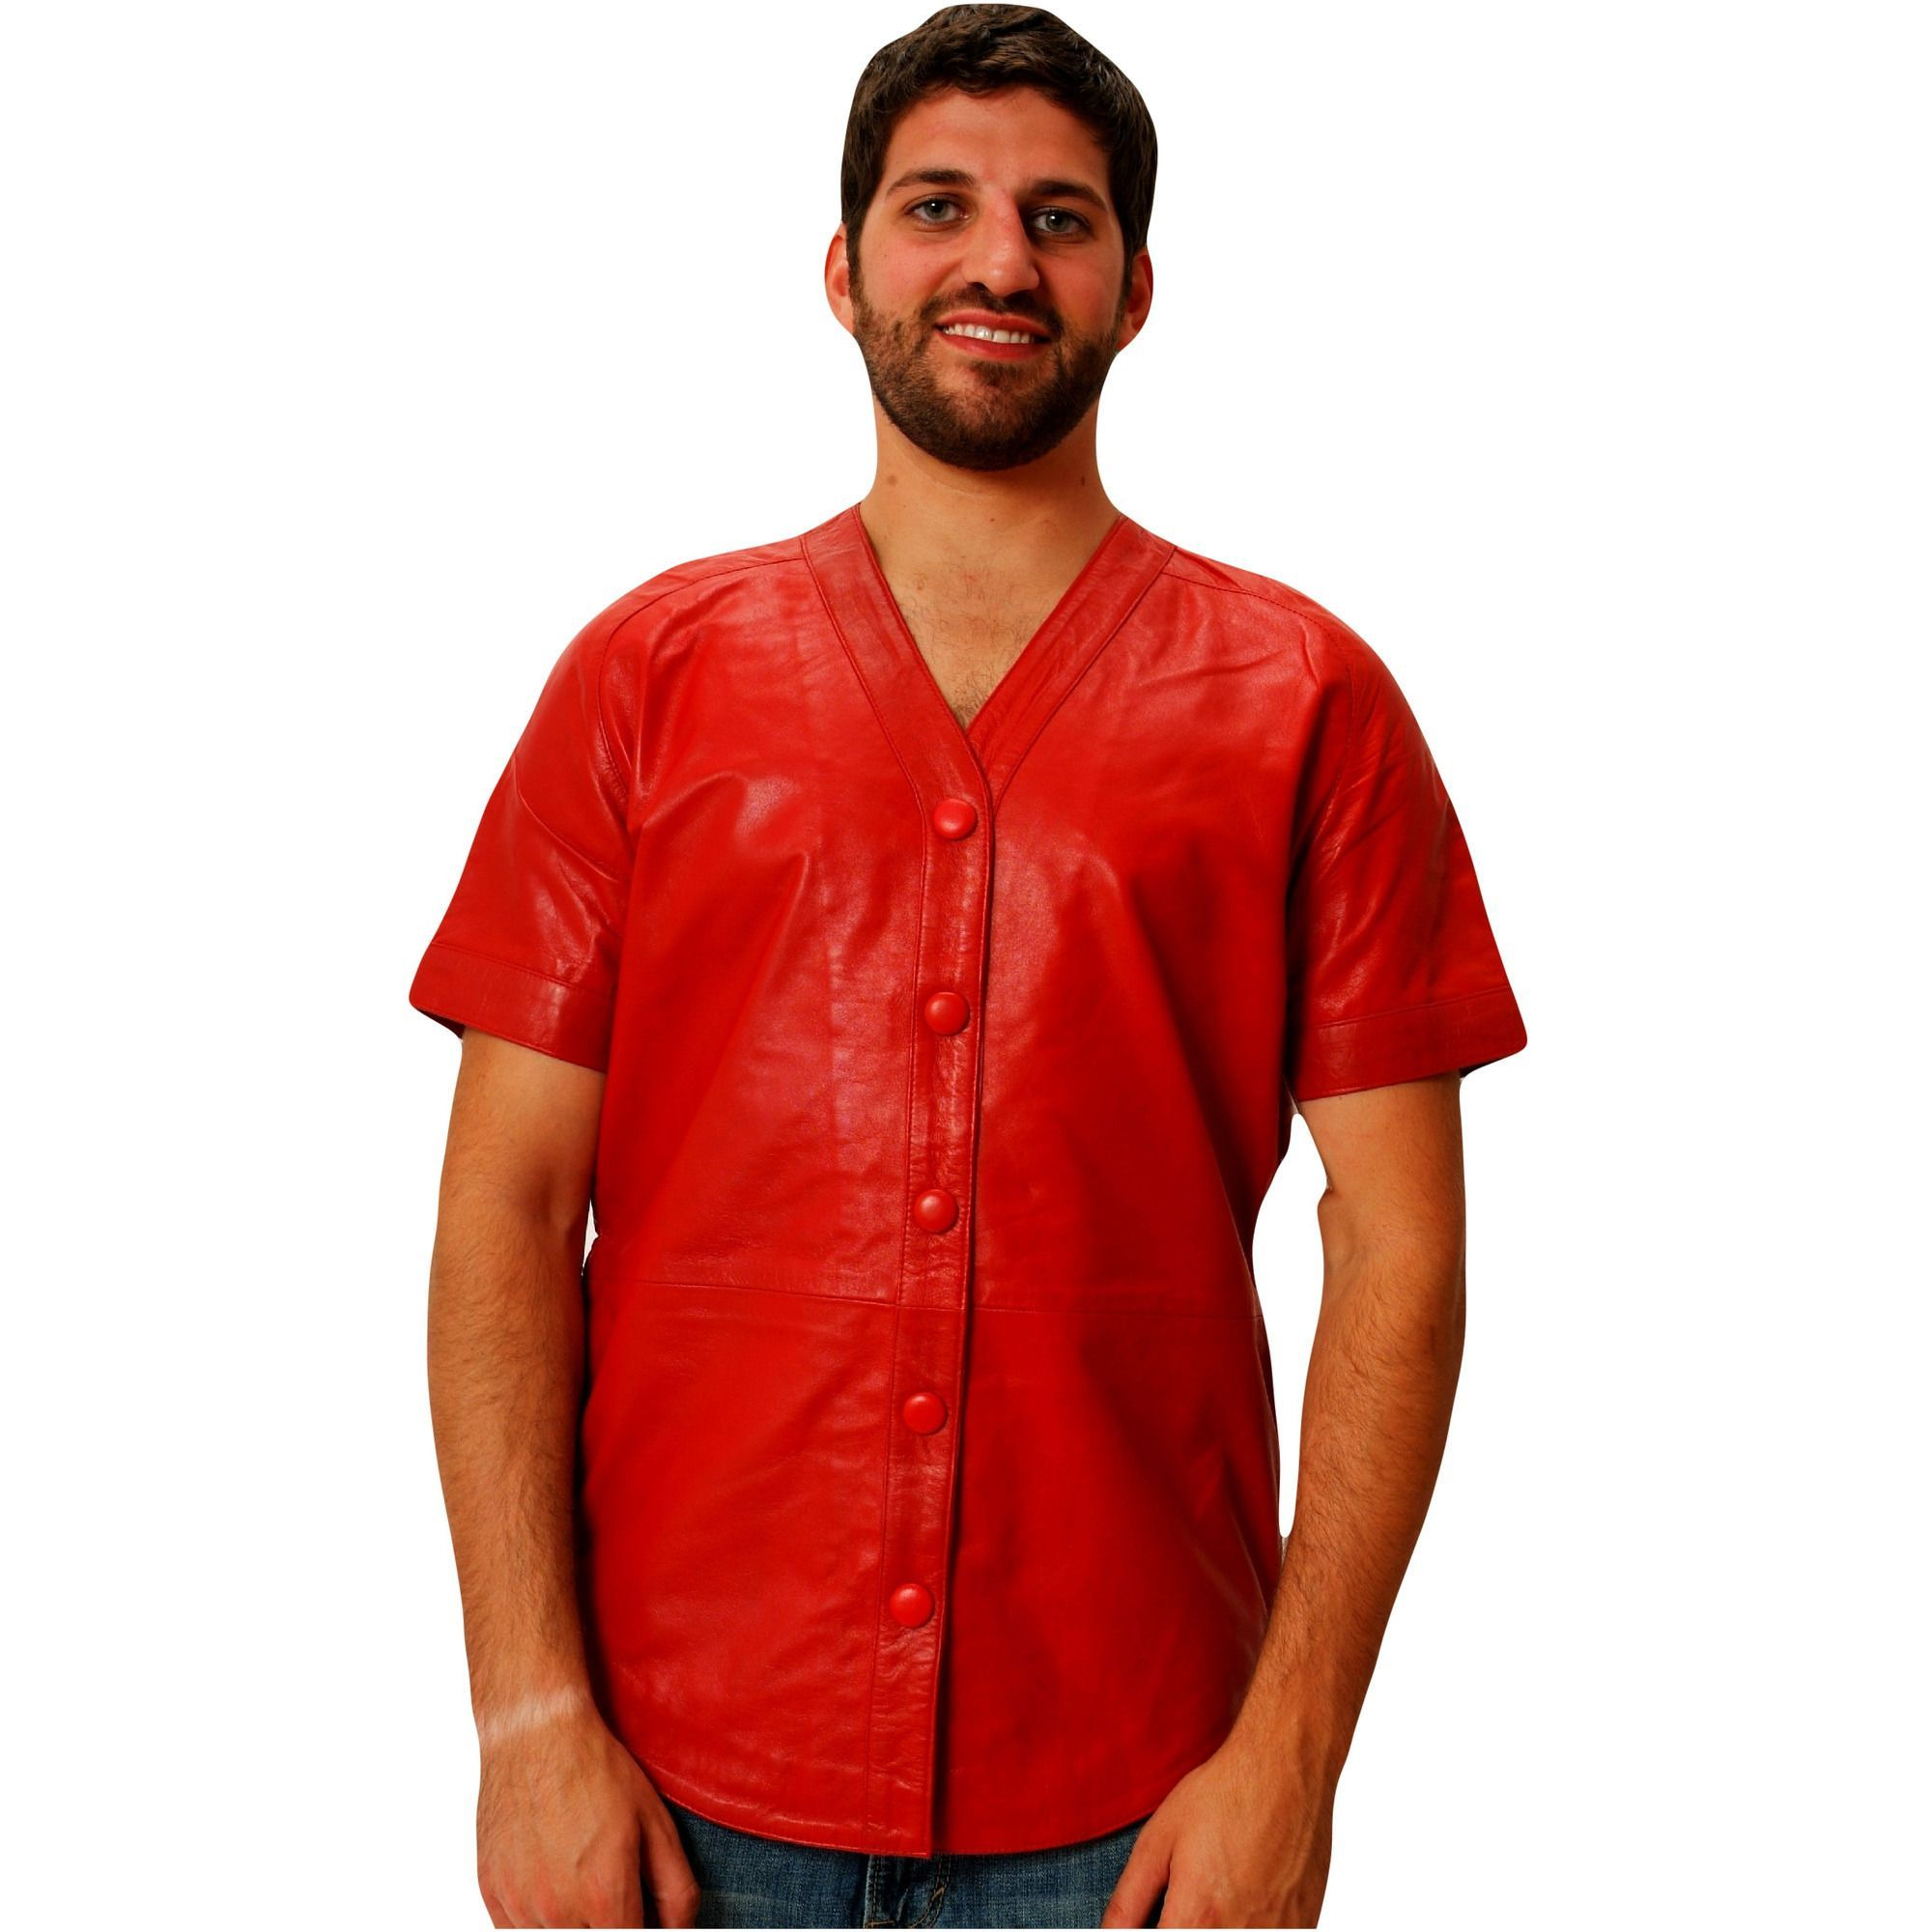 Mens Leather Shirt Red Baseball Jersey style Nappa Sheepskin Relaxed ... 10372dc71